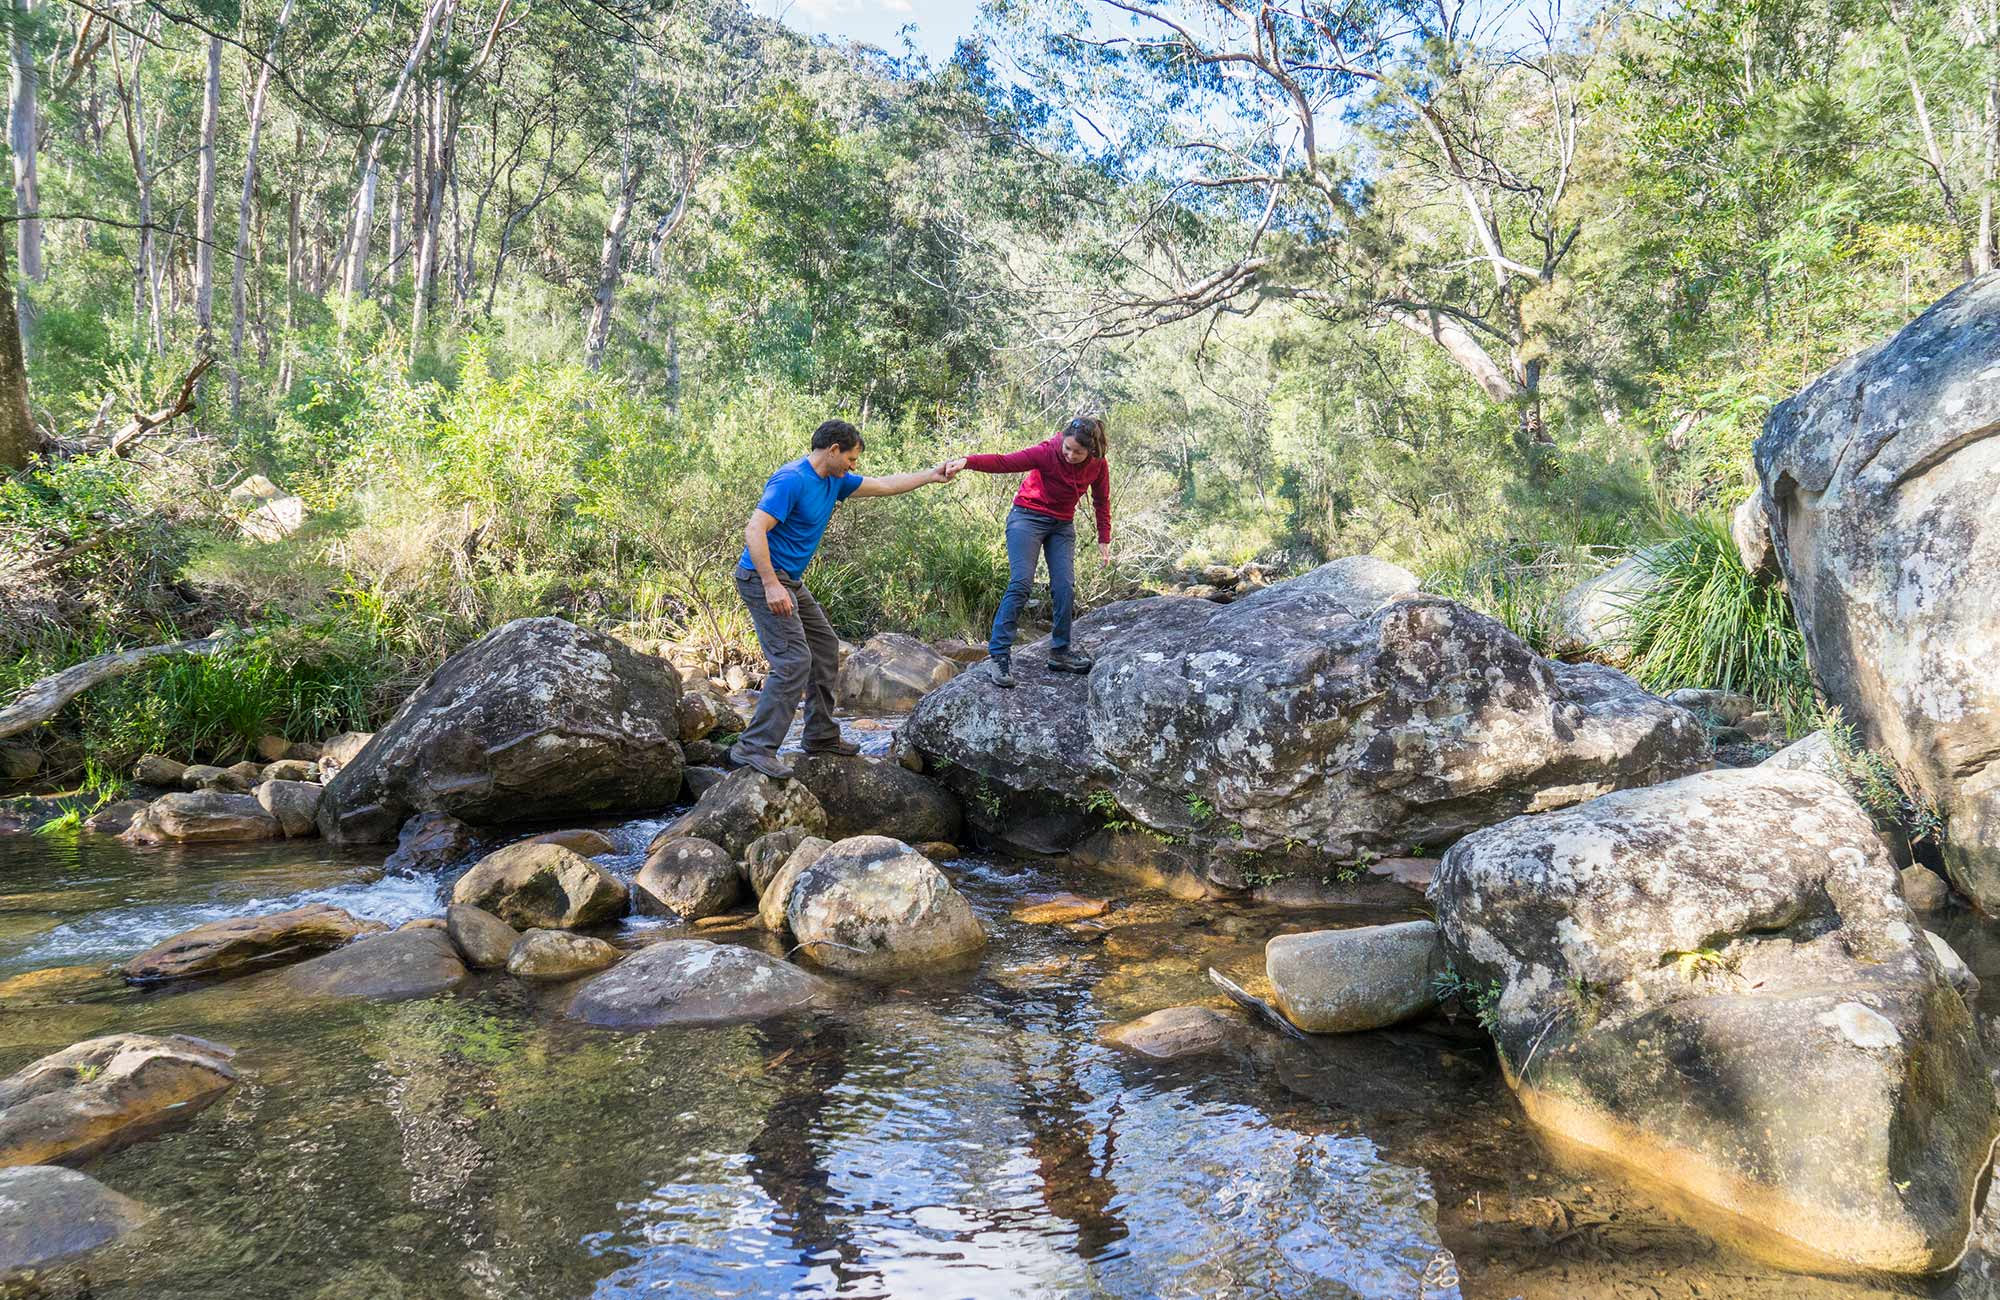 Hikers rock hopping on Rodriguez Pass walking track, Blue Mountains National Park. Photo: Simone Cottrell/OEH.